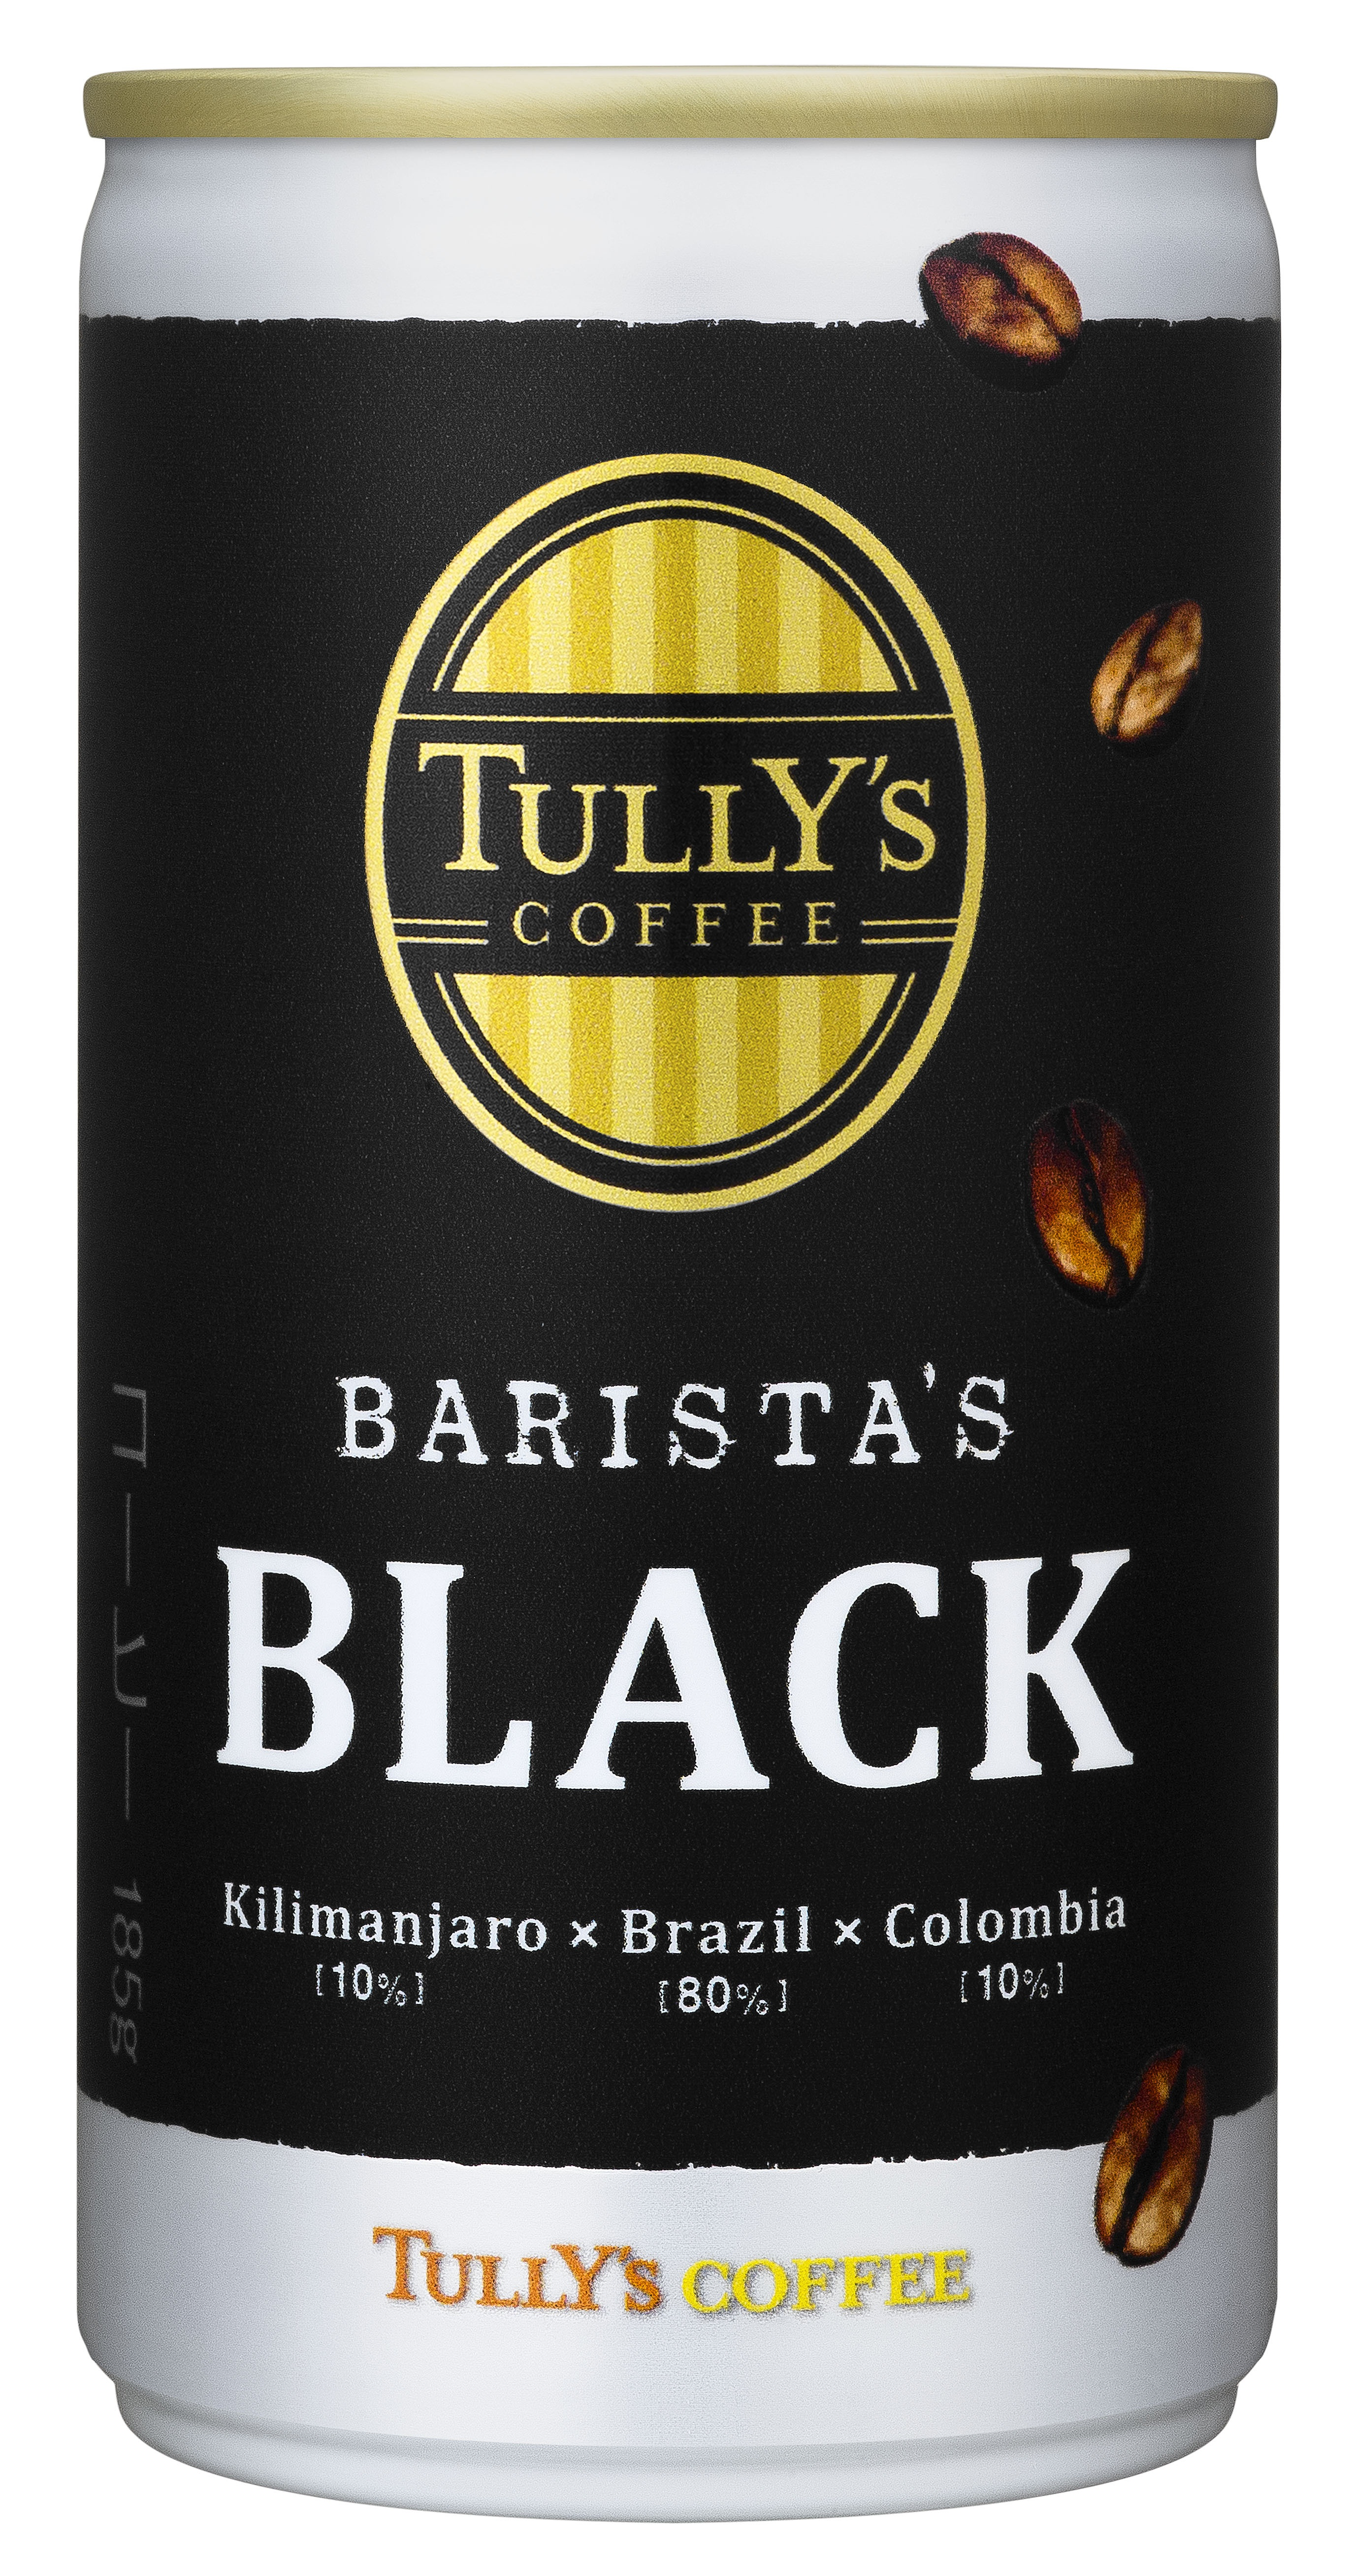 「TULLY'S COFFEE BARISTA'S BLACK」185g缶